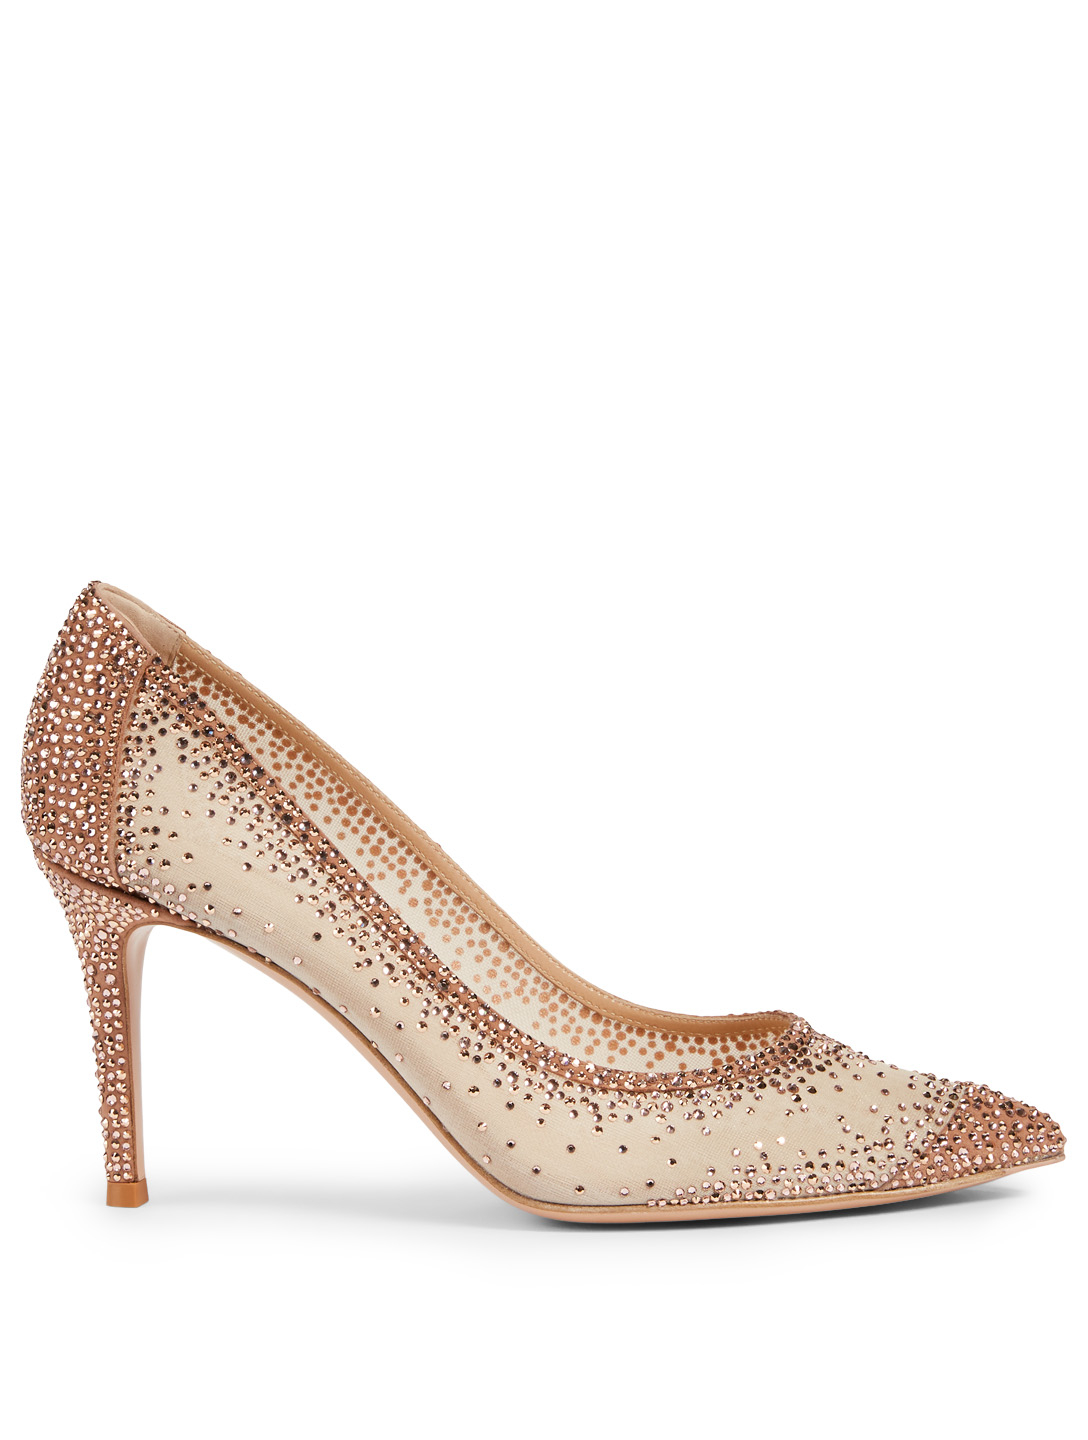 GIANVITO ROSSI Rania 85 Suede And Organza Pumps With Crystals Women's Metallic